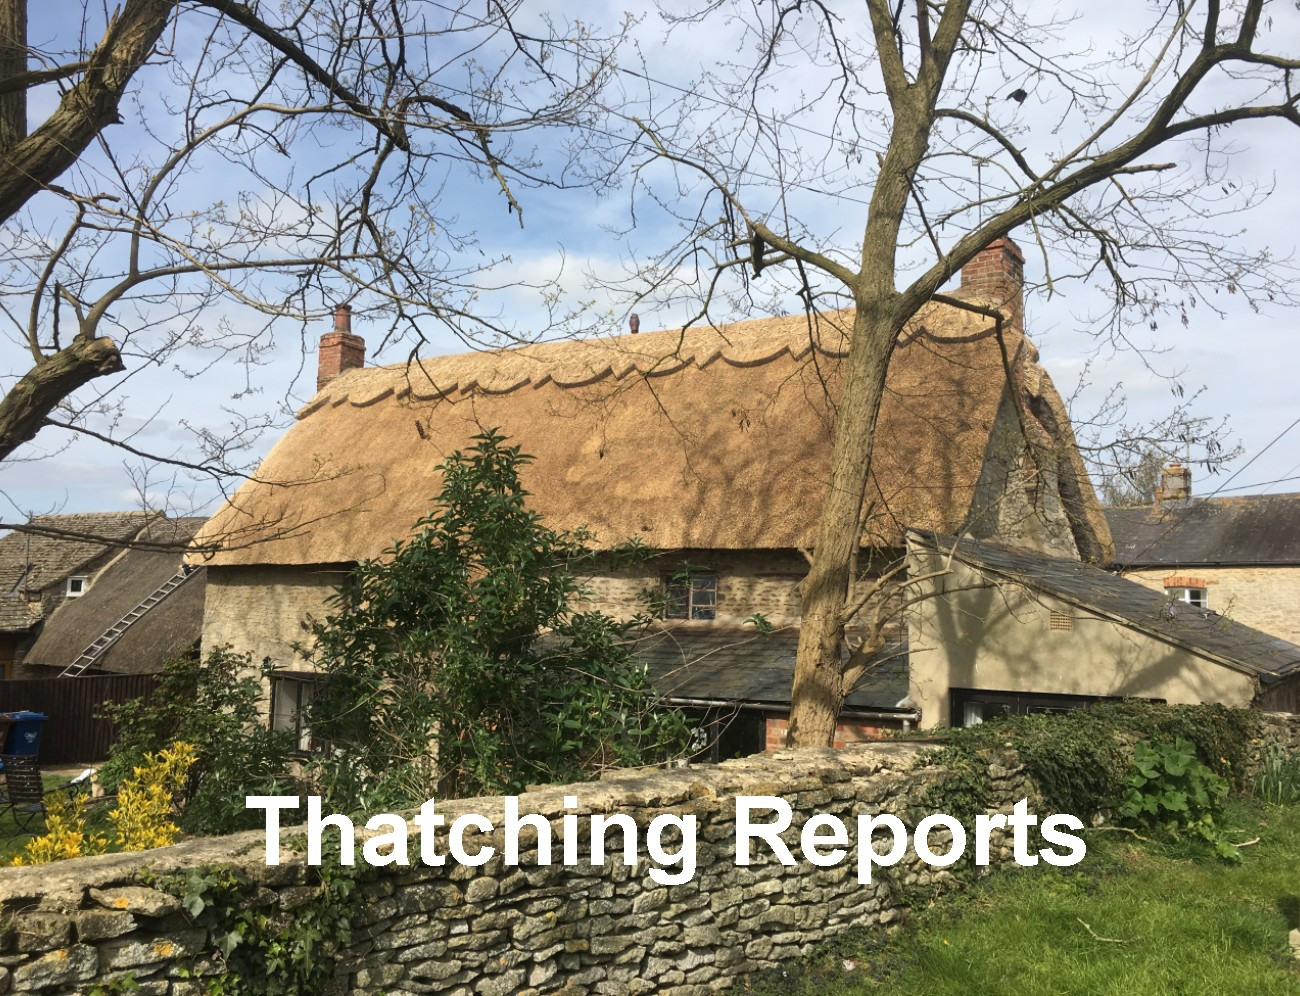 Thatching Reports